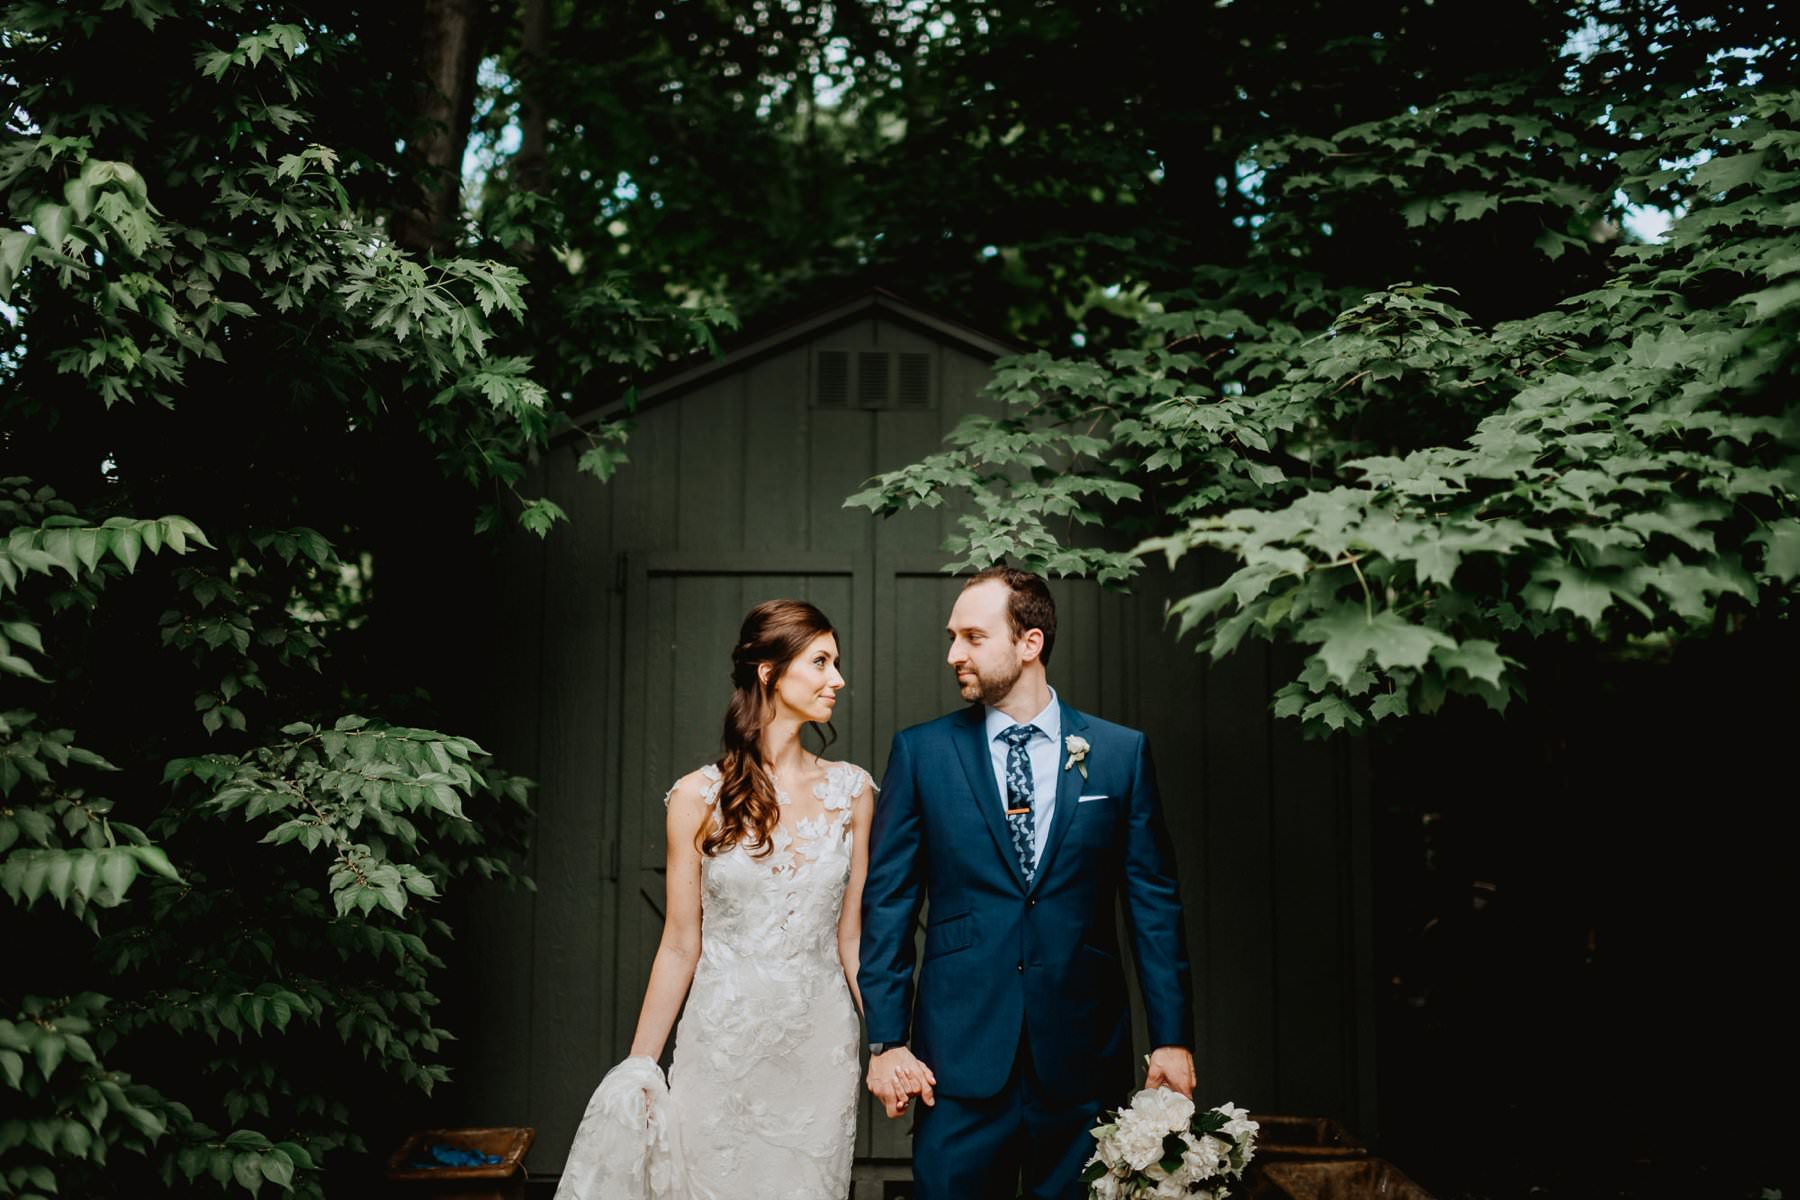 145-pomme_radnor_wedding-6.jpg